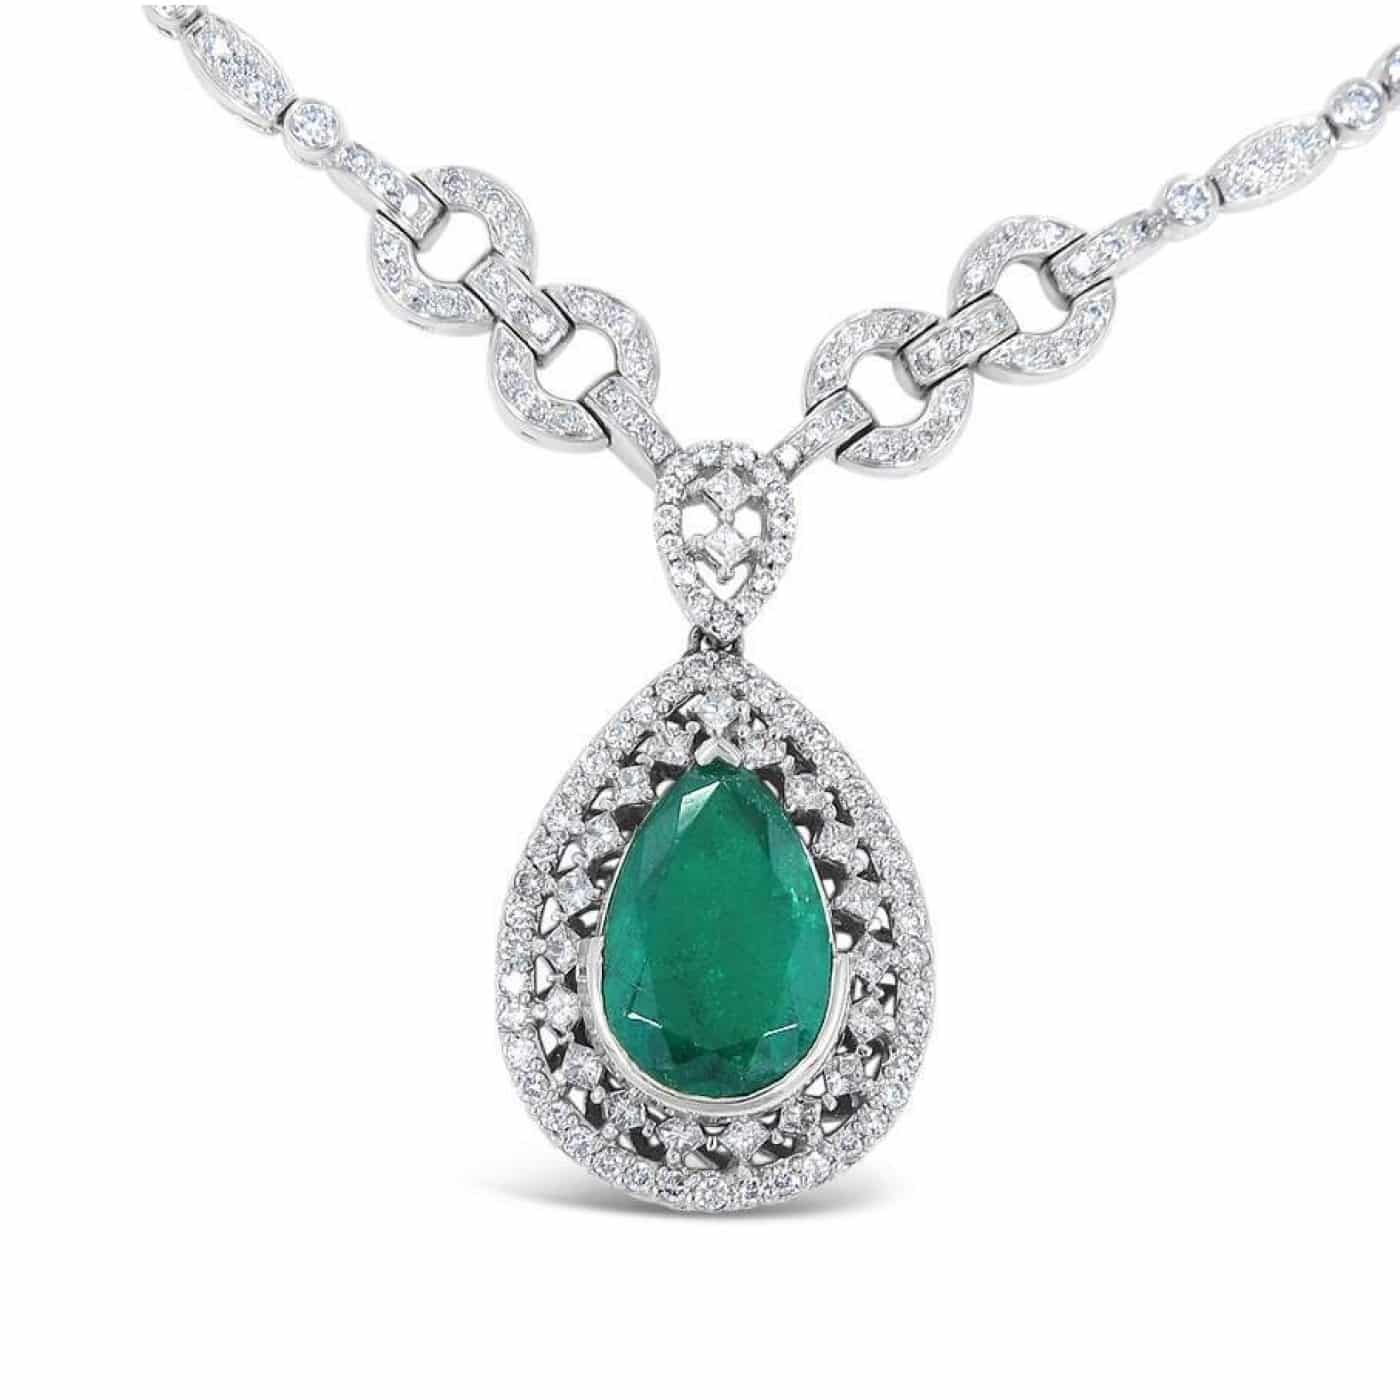 White Gold Pear Shape Emerald and Round/Princess Cut Diamond Necklace